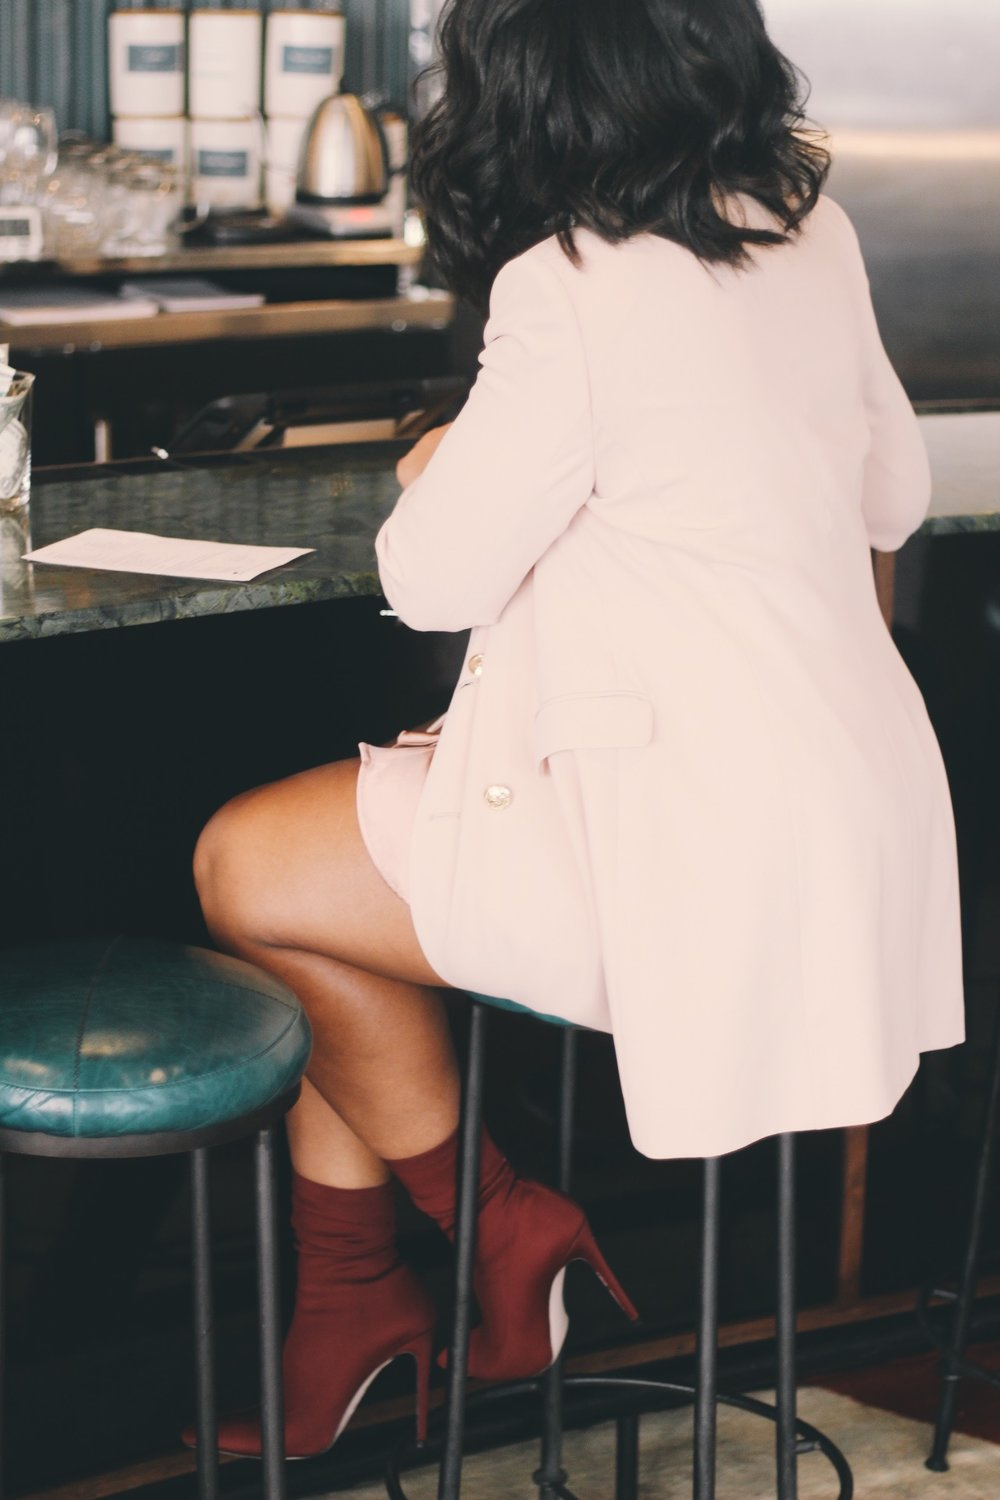 Durham-Hotel-Robinson-Style-Zara-blazer-dress-ruffle-shirt-dress-raid-asos-sock-boots-2.JPG